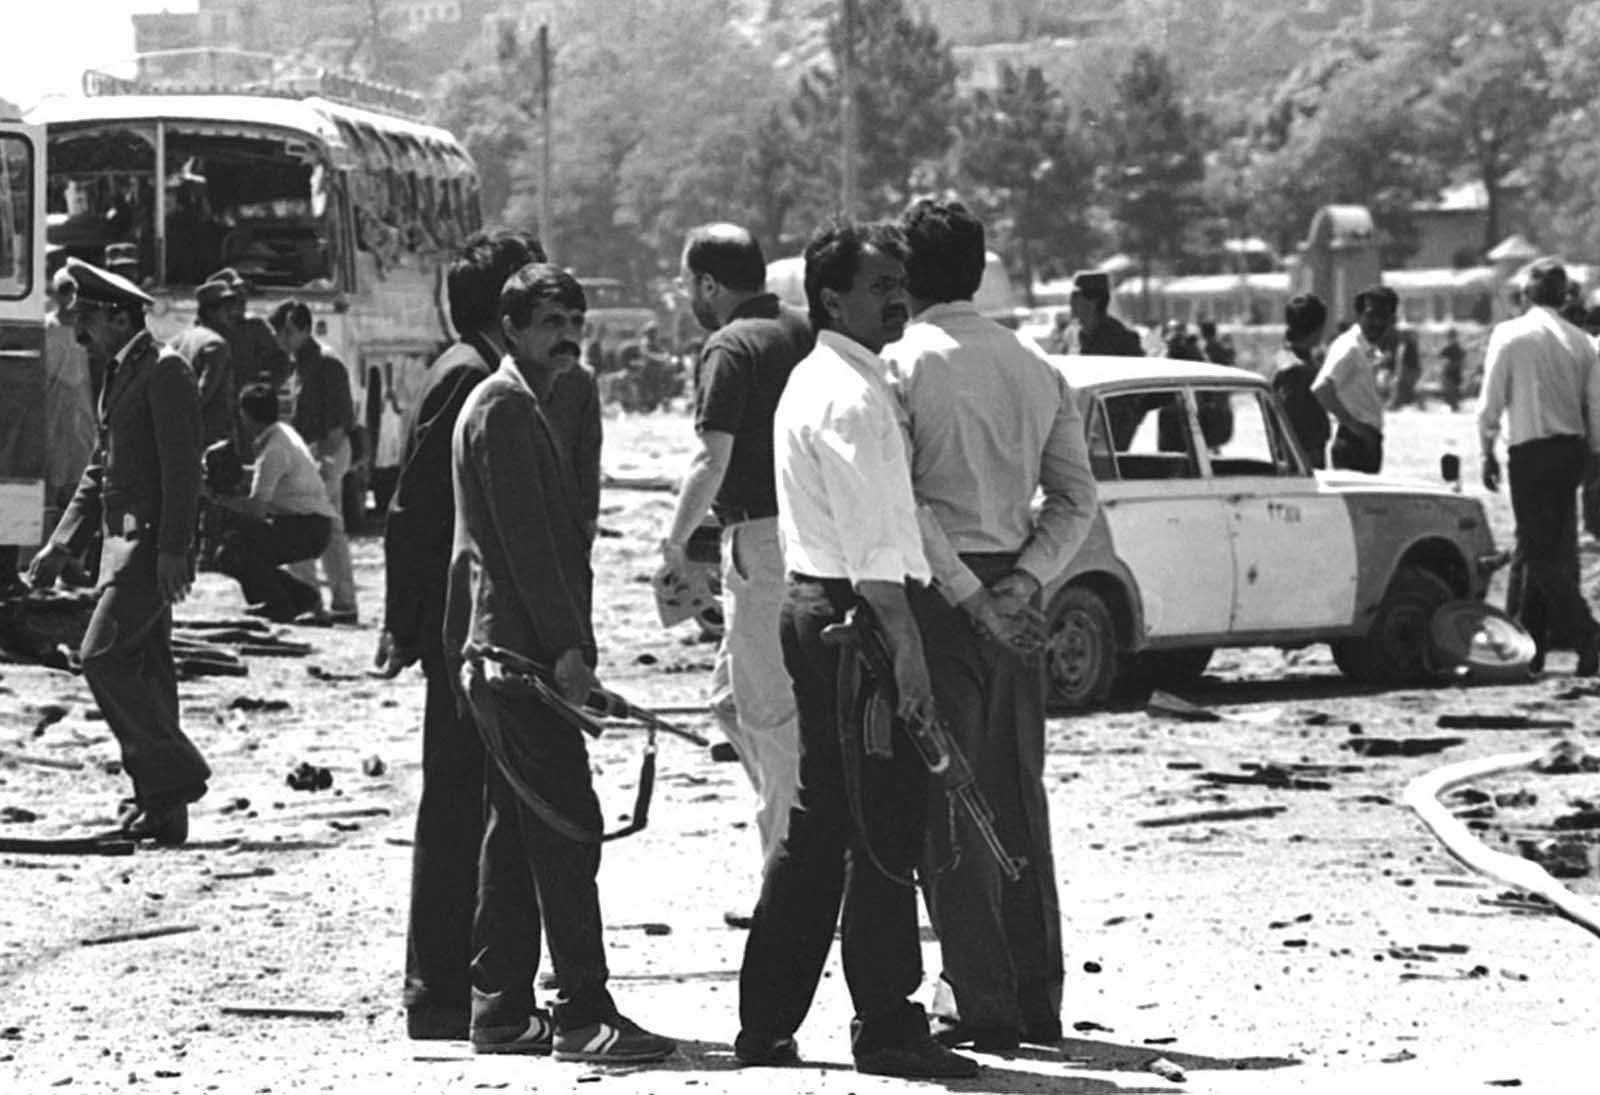 Police and armed Afghan militiamen walk amid the debris after a bomb, allegedly placed by the Mujahideen rebels, exploded in downtown Kabul during celebrations marking the 10th anniversary of the Afghan revolution backed by the Soviet Union on April 27, 1988.